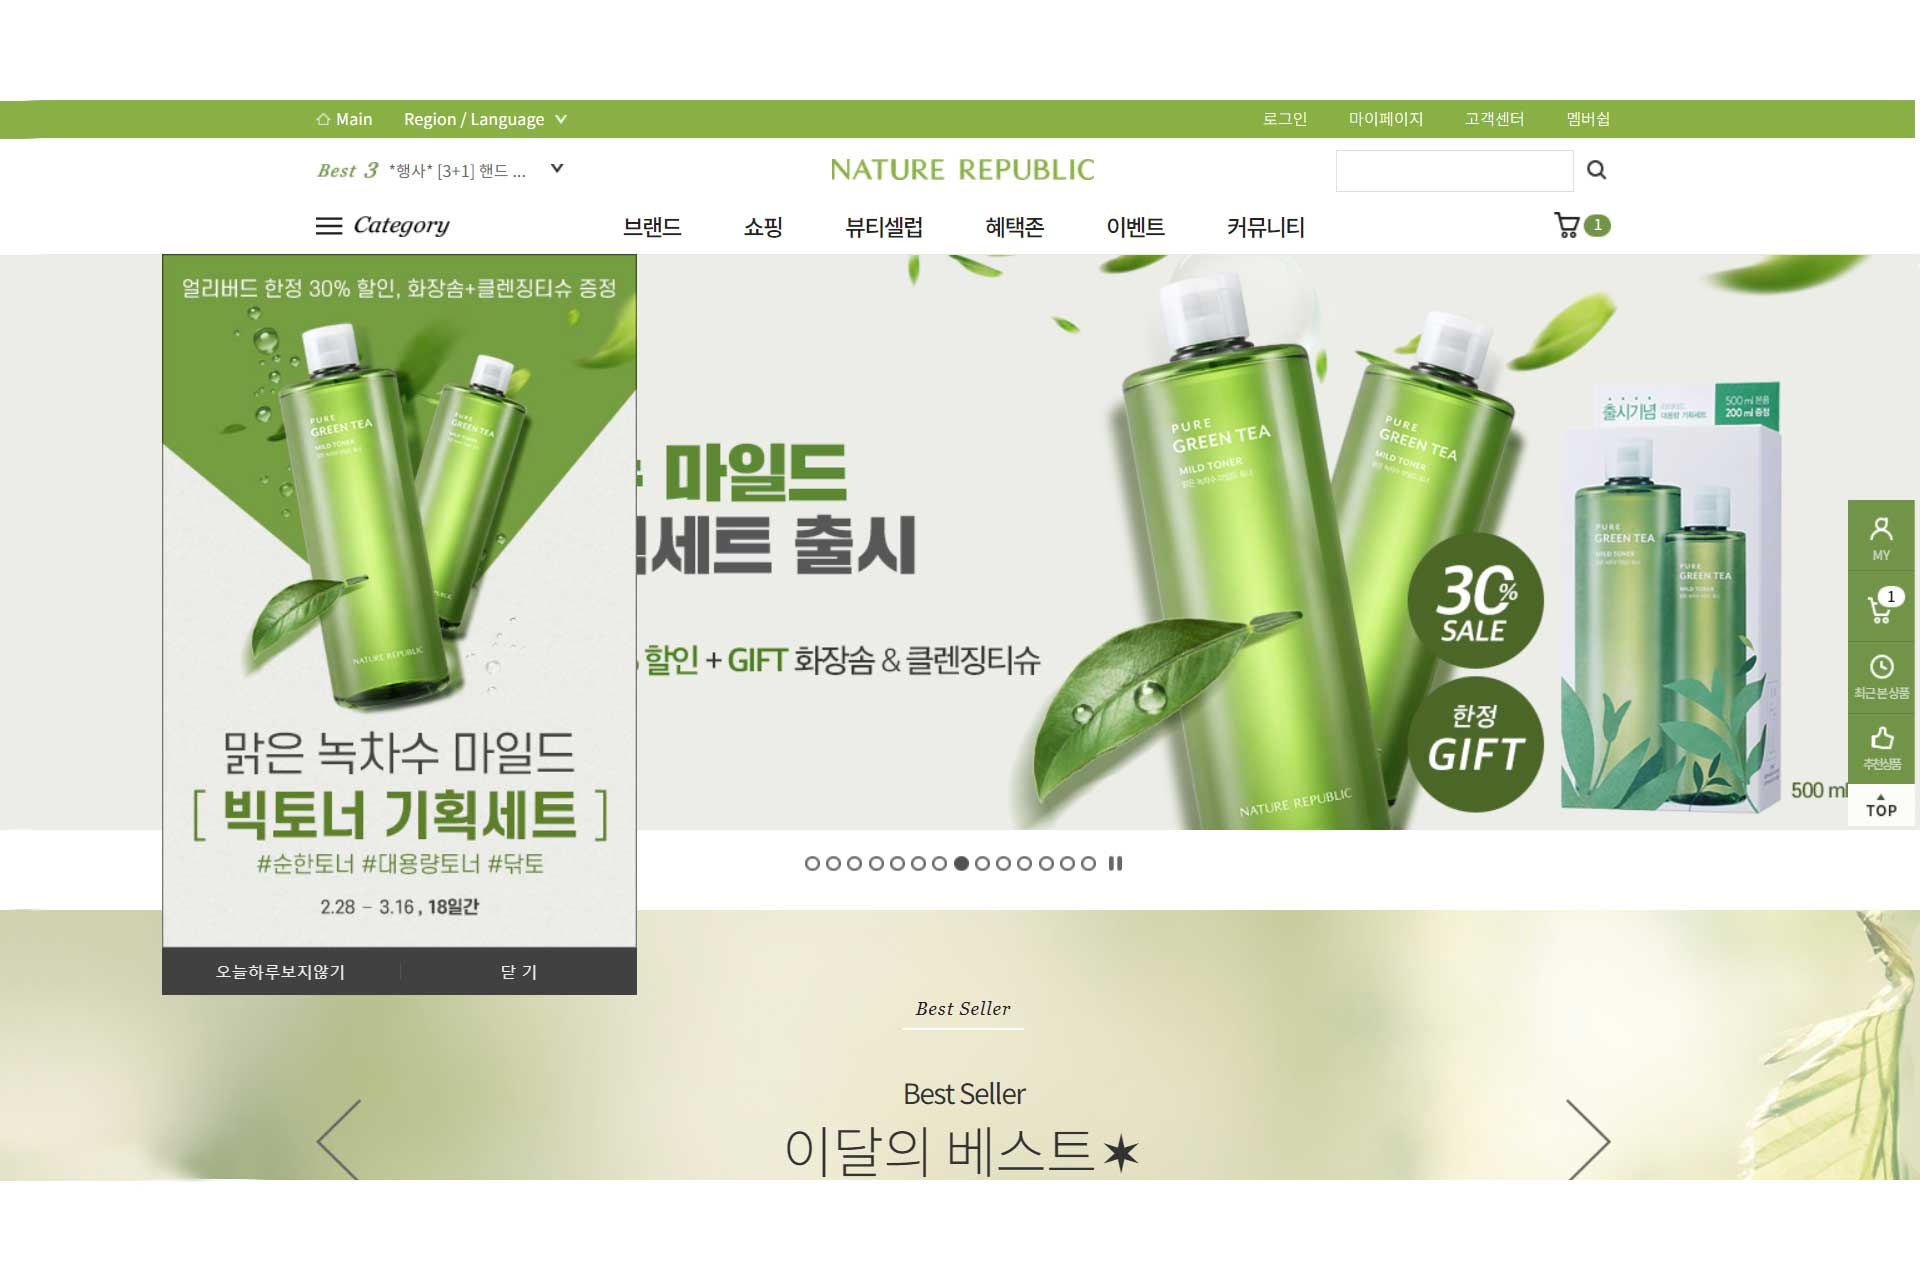 Guidelines for Online Shopping in South Korea: Nature Republic